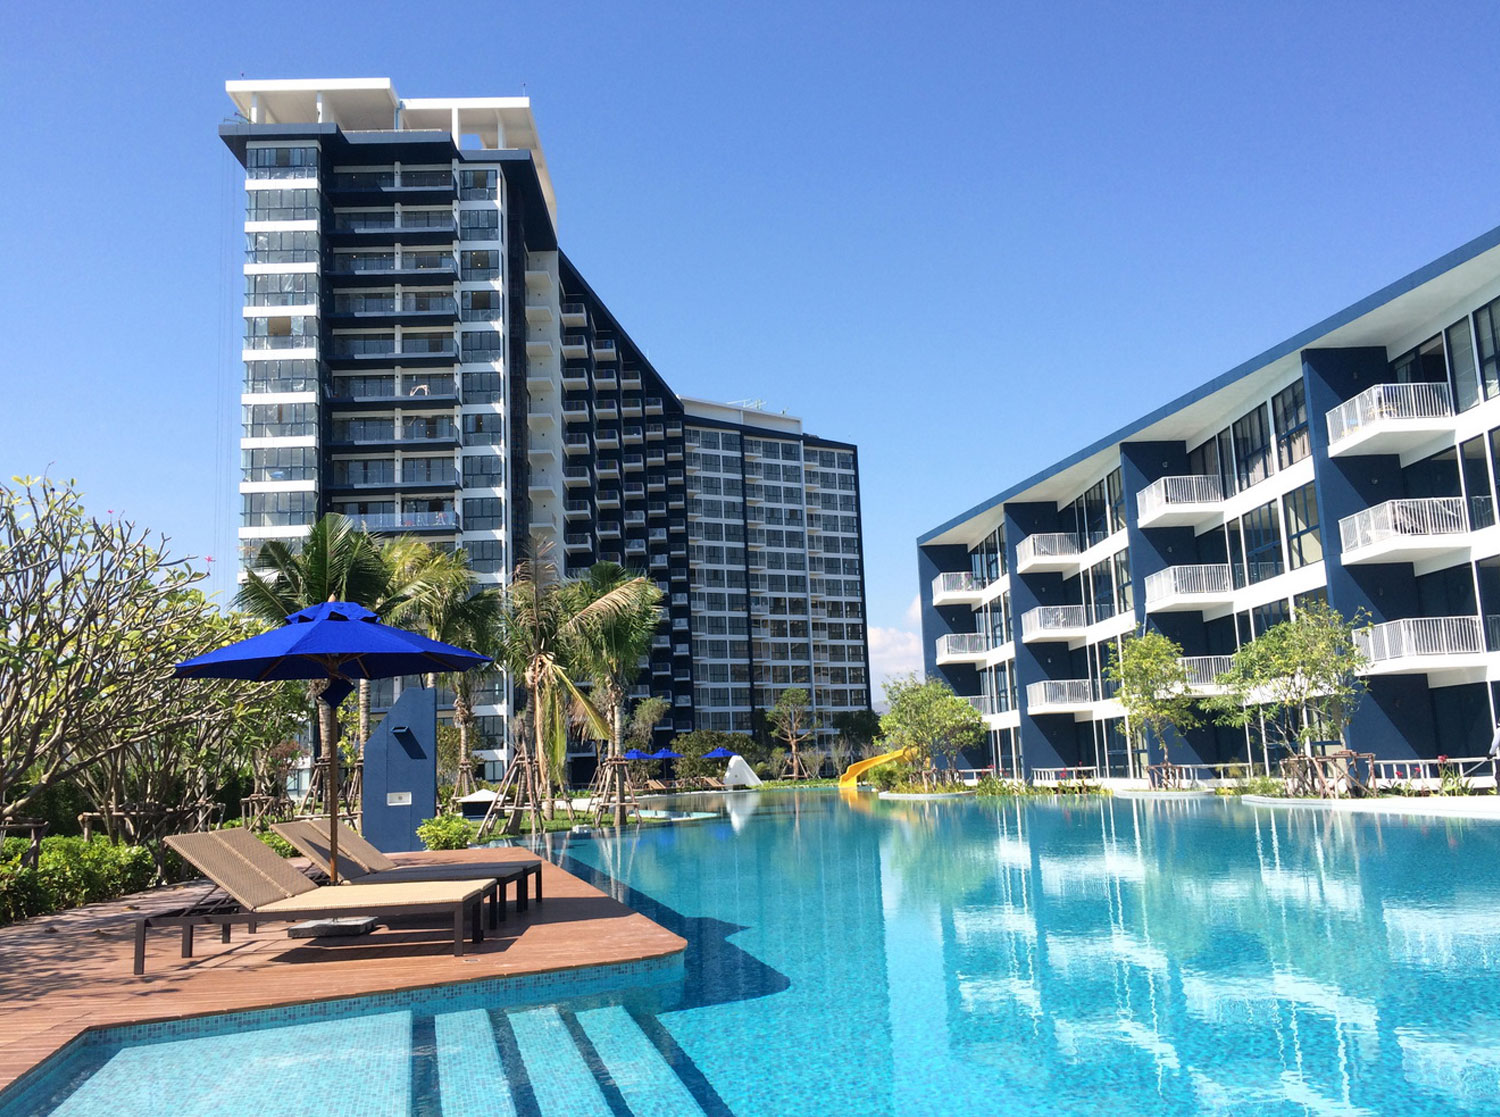 Condo Thewtalay BlueSapphire ChaAm-HuaHin-Facility